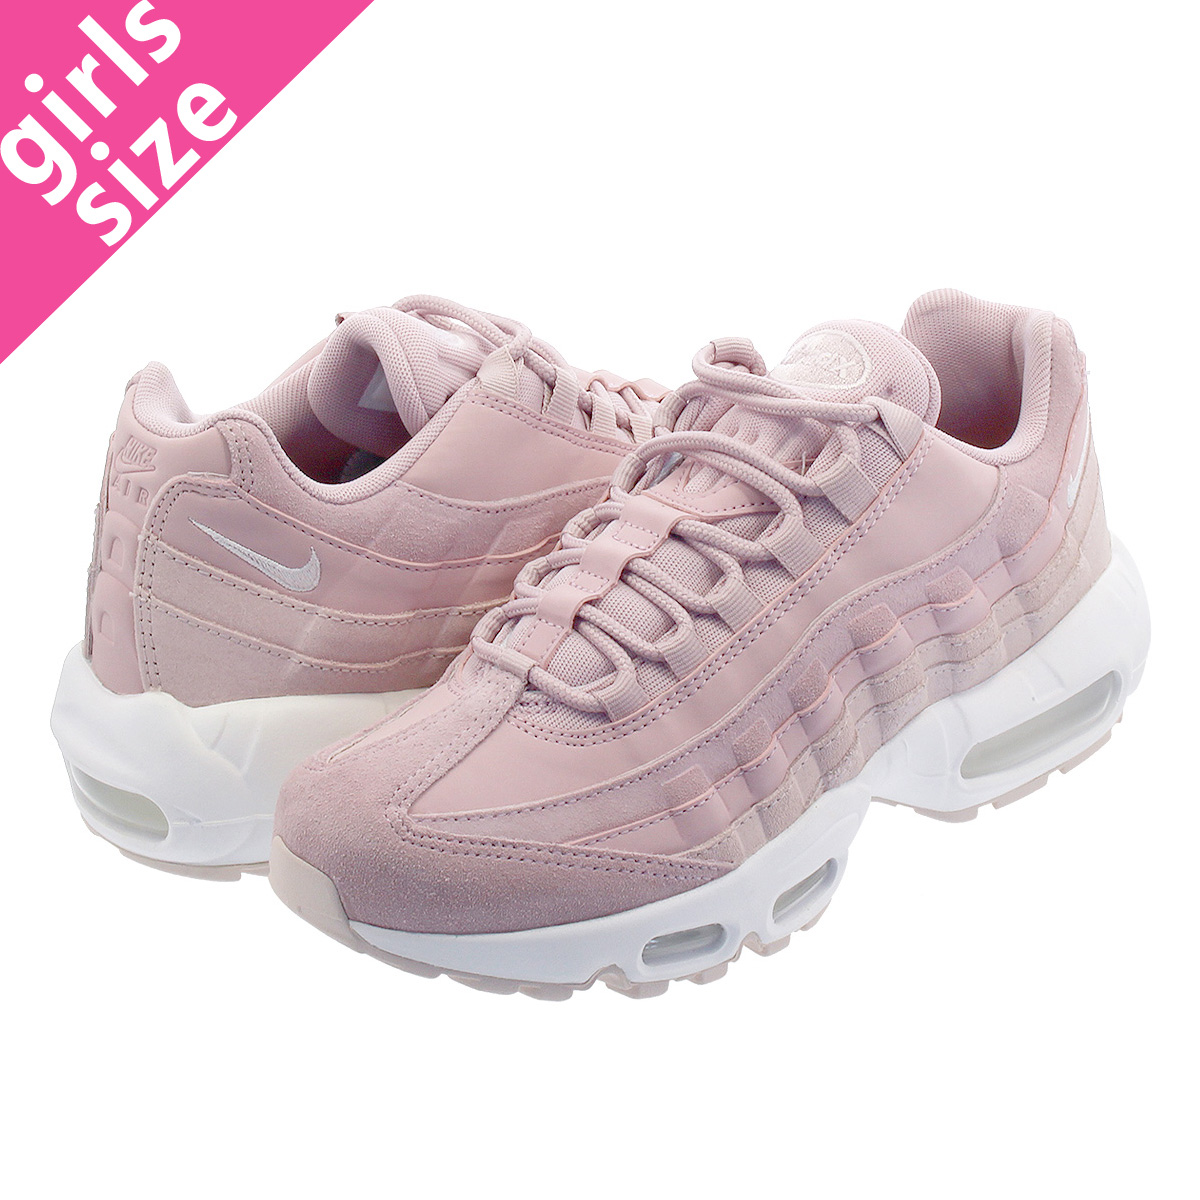 NIKE WMNS AIR MAX 95 PRM Nike women Air Max 95 premium PLUM CHALKBARELY ROSESUMMIT WHITE 807,443 503